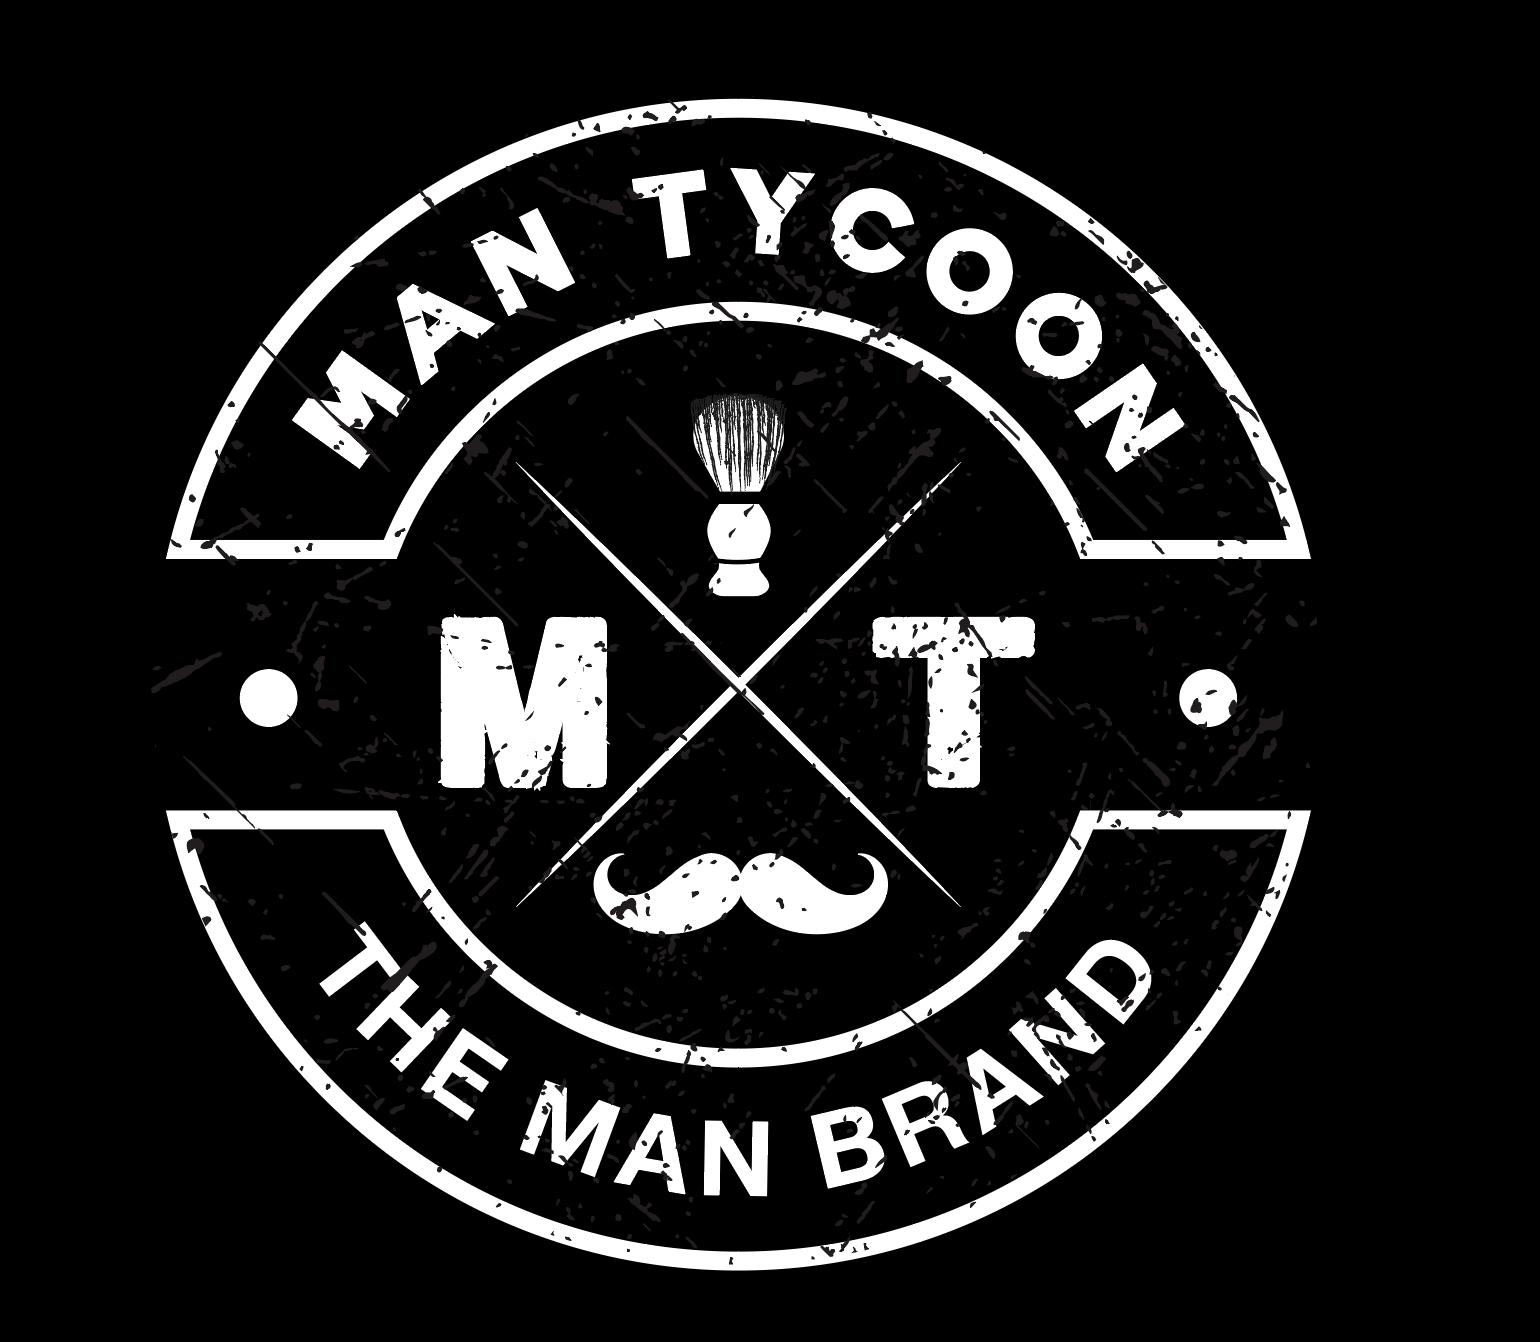 Mantycoon